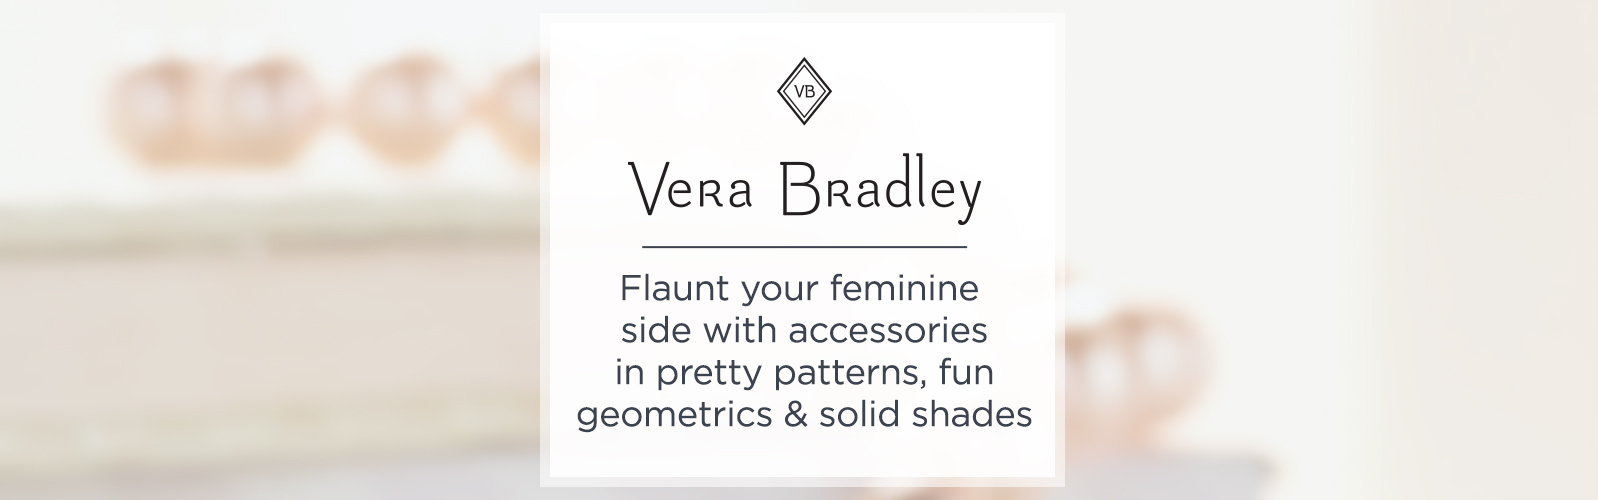 Vera Bradley - Flaunt your feminine side with accessories in pretty patterns, fun geometrics & solid shades